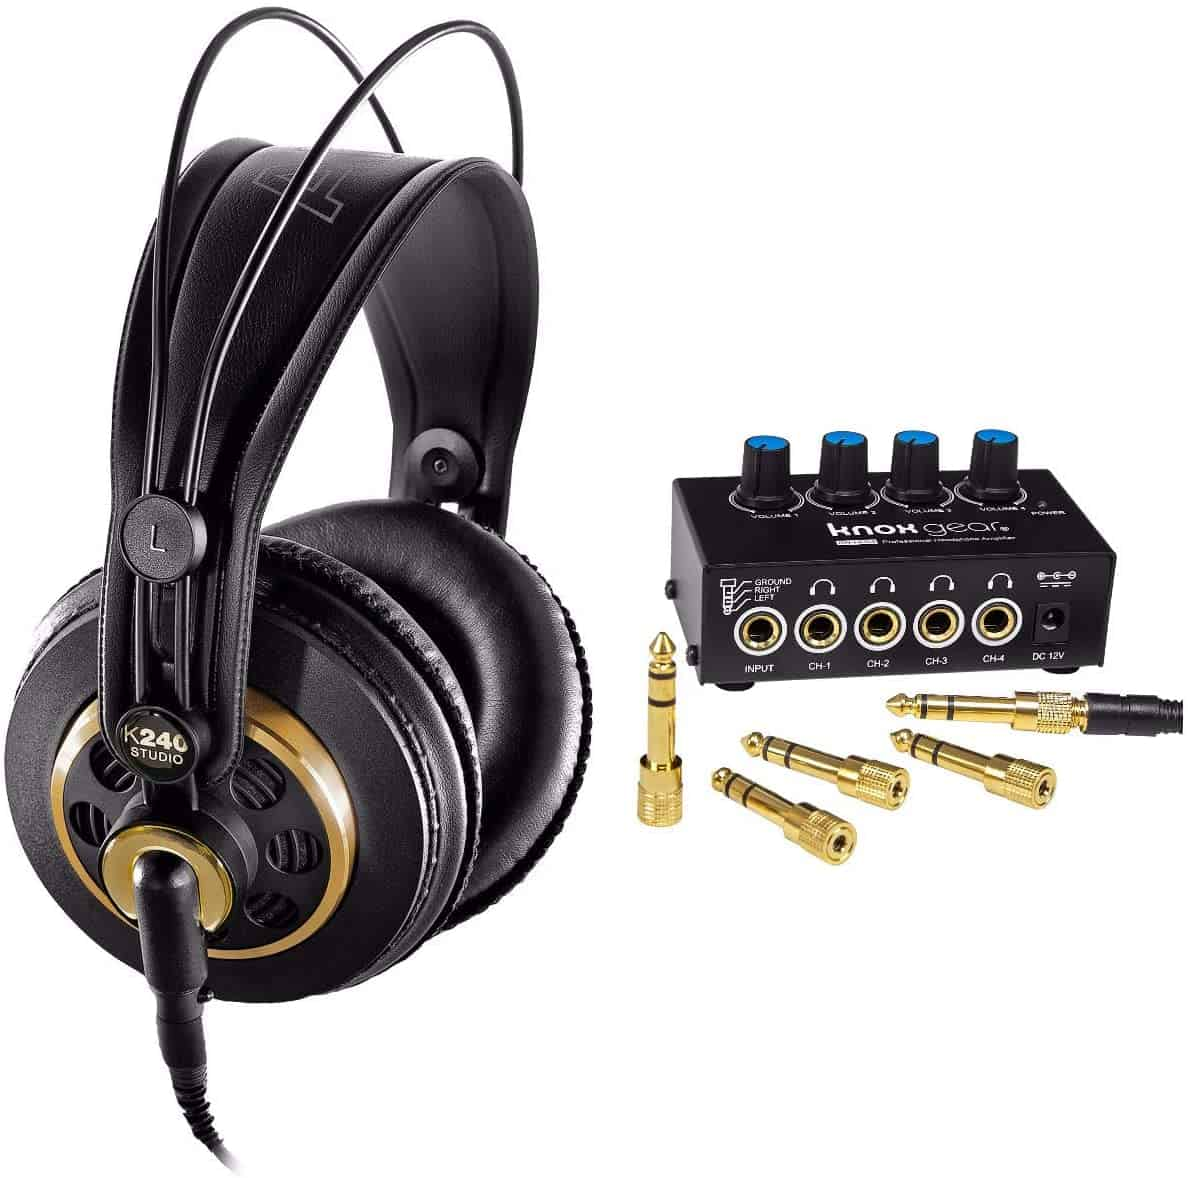 Best for under $100 & best semi-open- AKG K240 Studio with Knox Gear